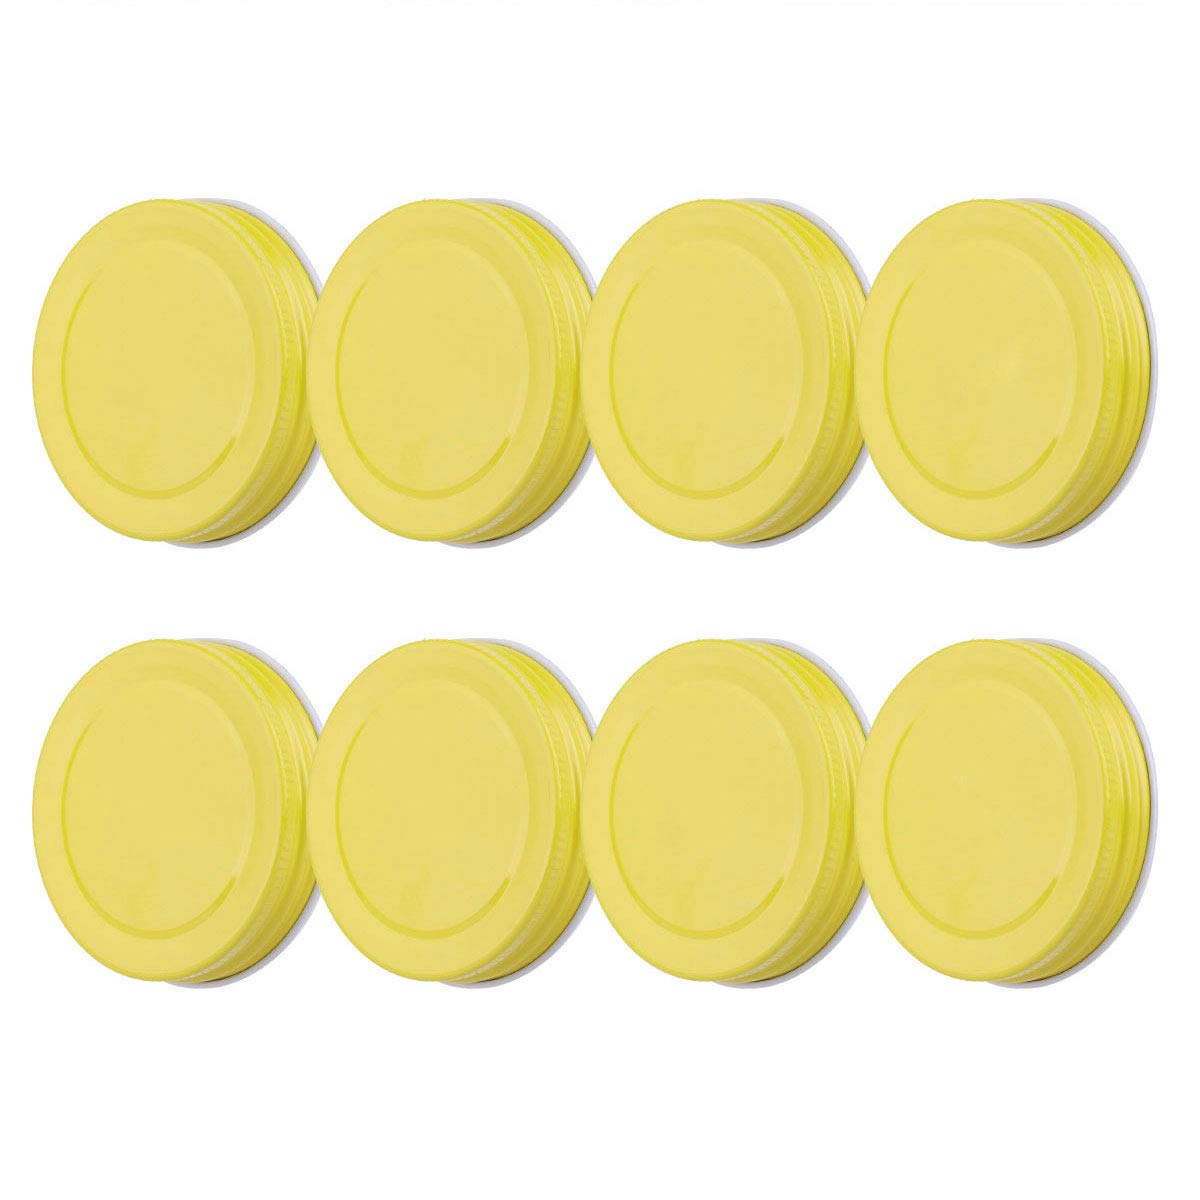 Freebily 8pcs Drinking Jar Lids, Stainless Steel Replacement Caps Lids for Mason Jars Canning Drinking Jars Yellow One Size